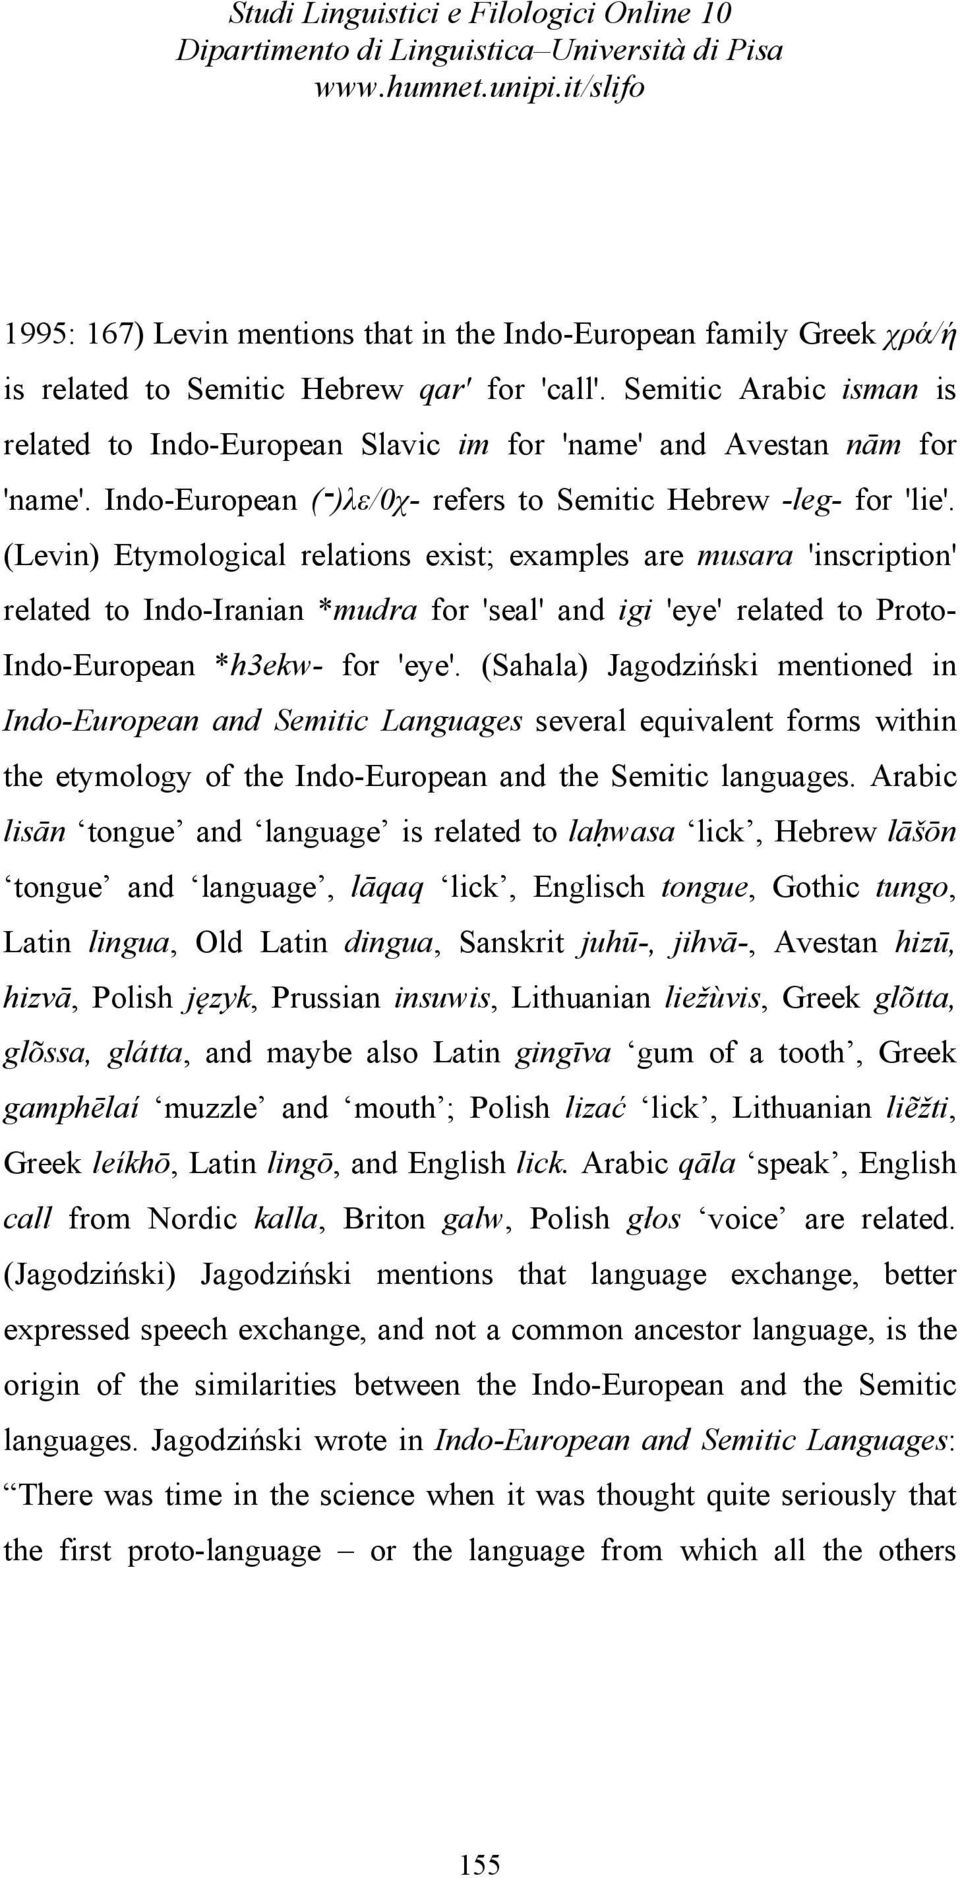 (Levin) Etymological relations exist; examples are musara 'inscription' related to Indo-Iranian *mudra for 'seal' and igi 'eye' related to Proto- Indo-European *h3ekw- for 'eye'.